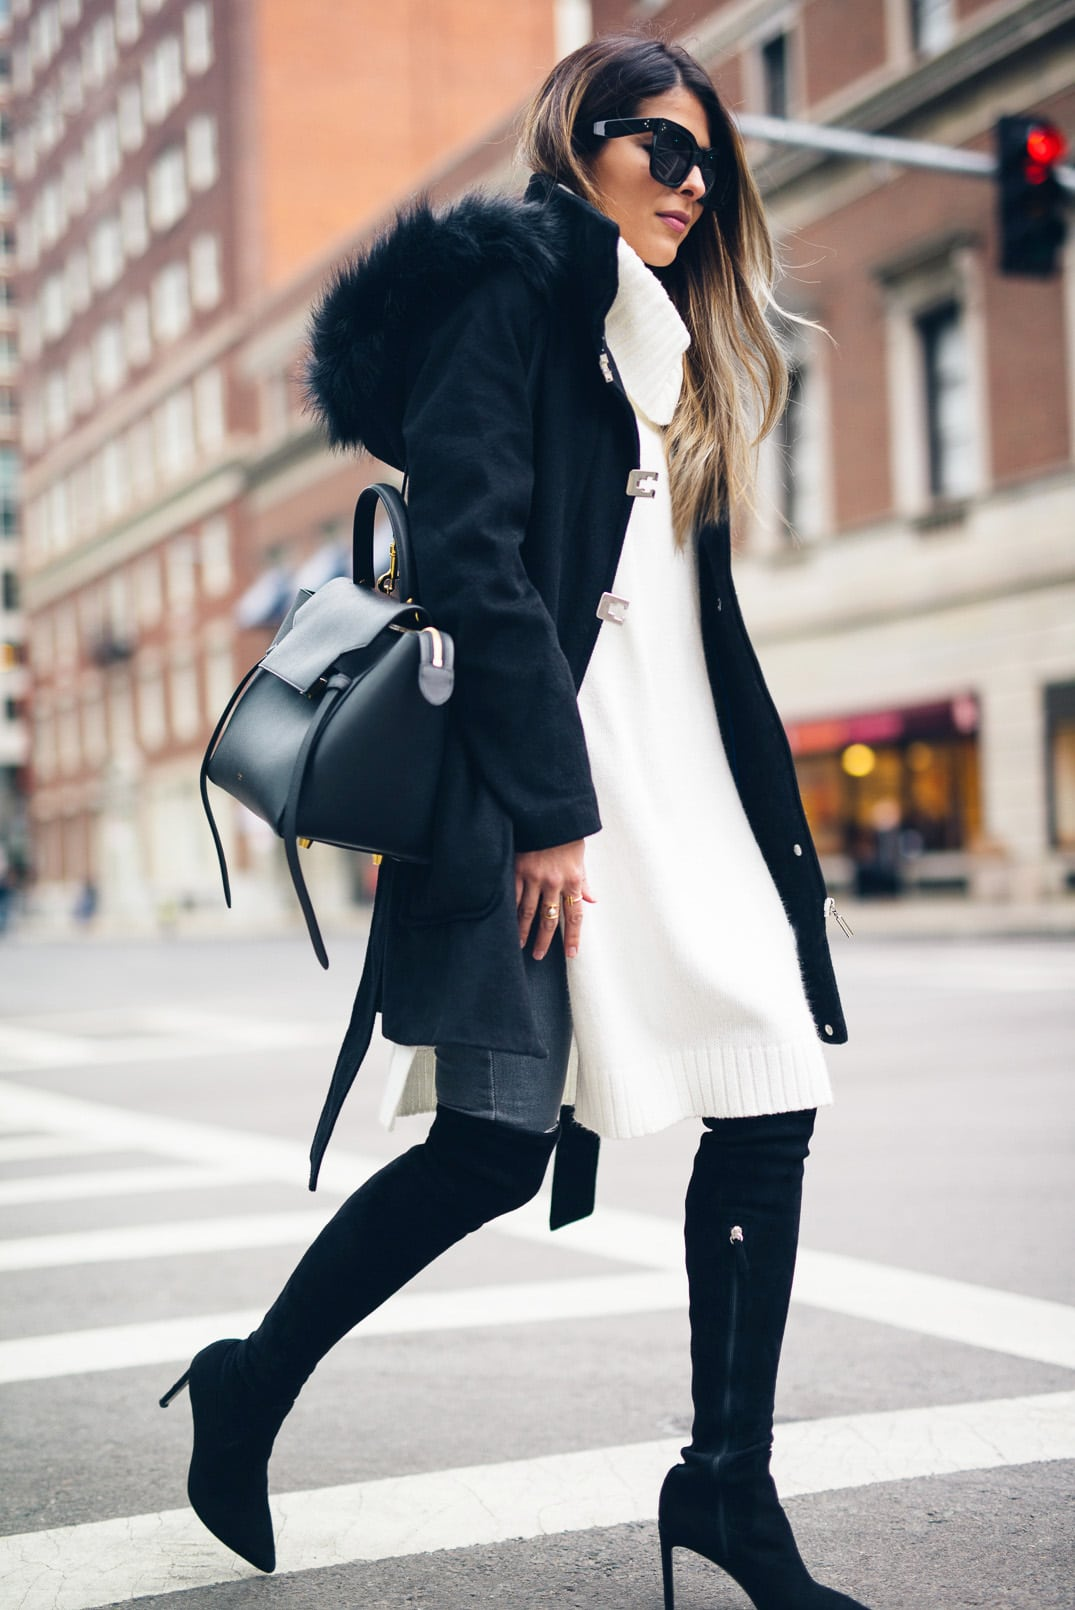 Pam Hetlinger, The Girl From Panama wearing Over-the-knee-boots, sleeveless tunic, gray denim, black coat, celine belt bag, and celine sunglasses